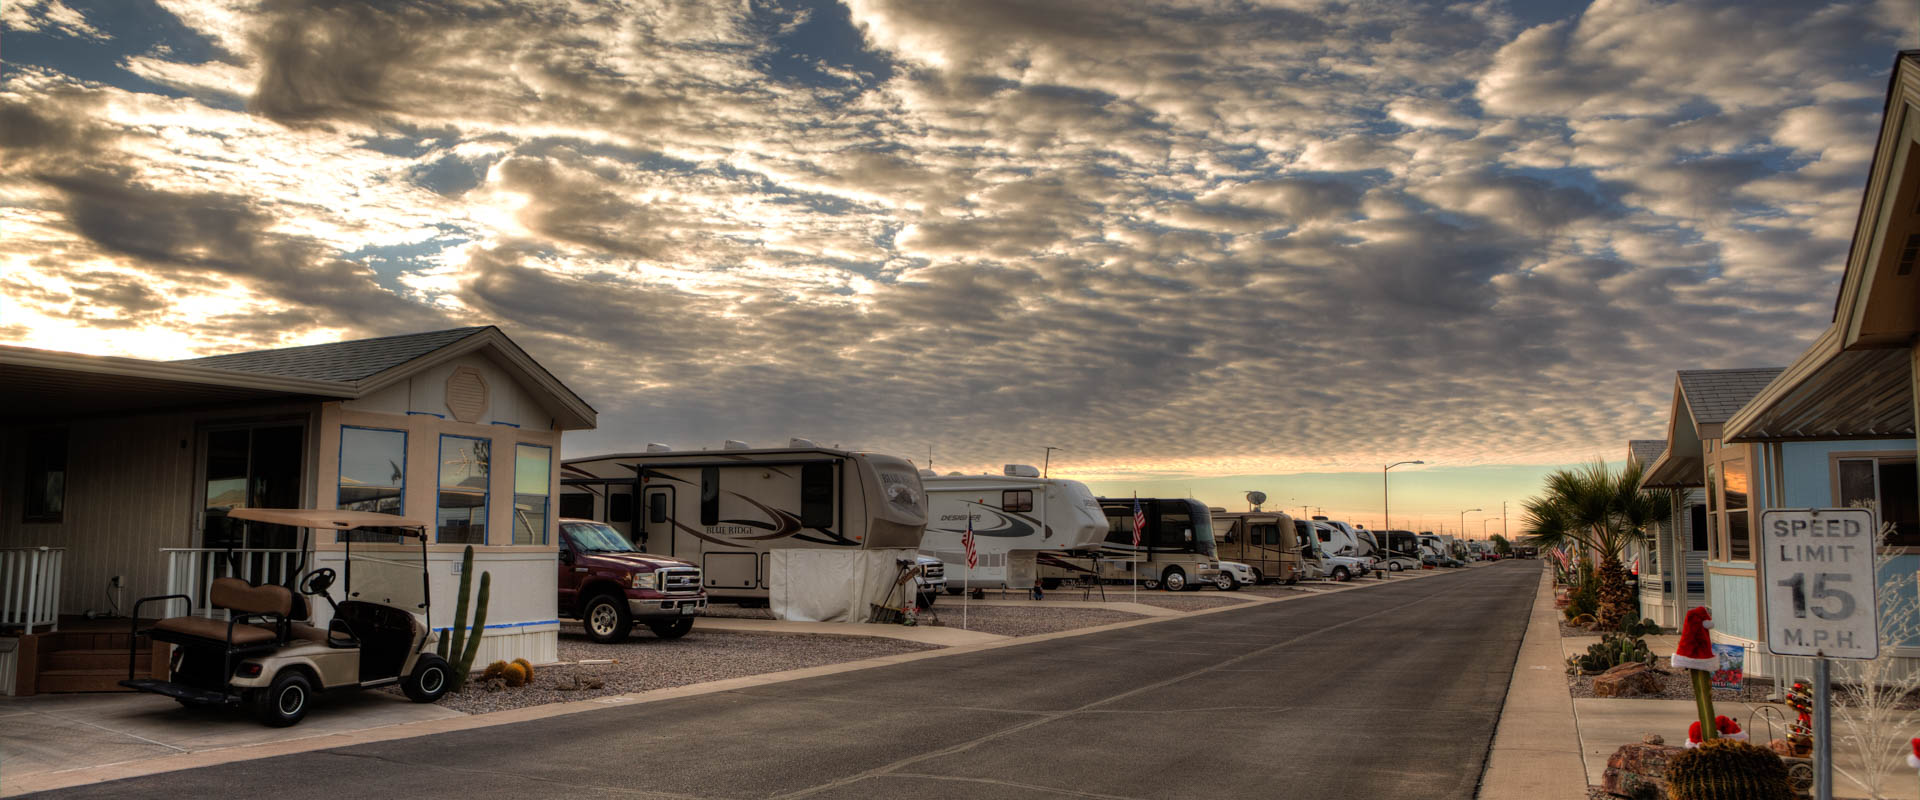 RV Sites at Sundance 1 RV Arizona Resort